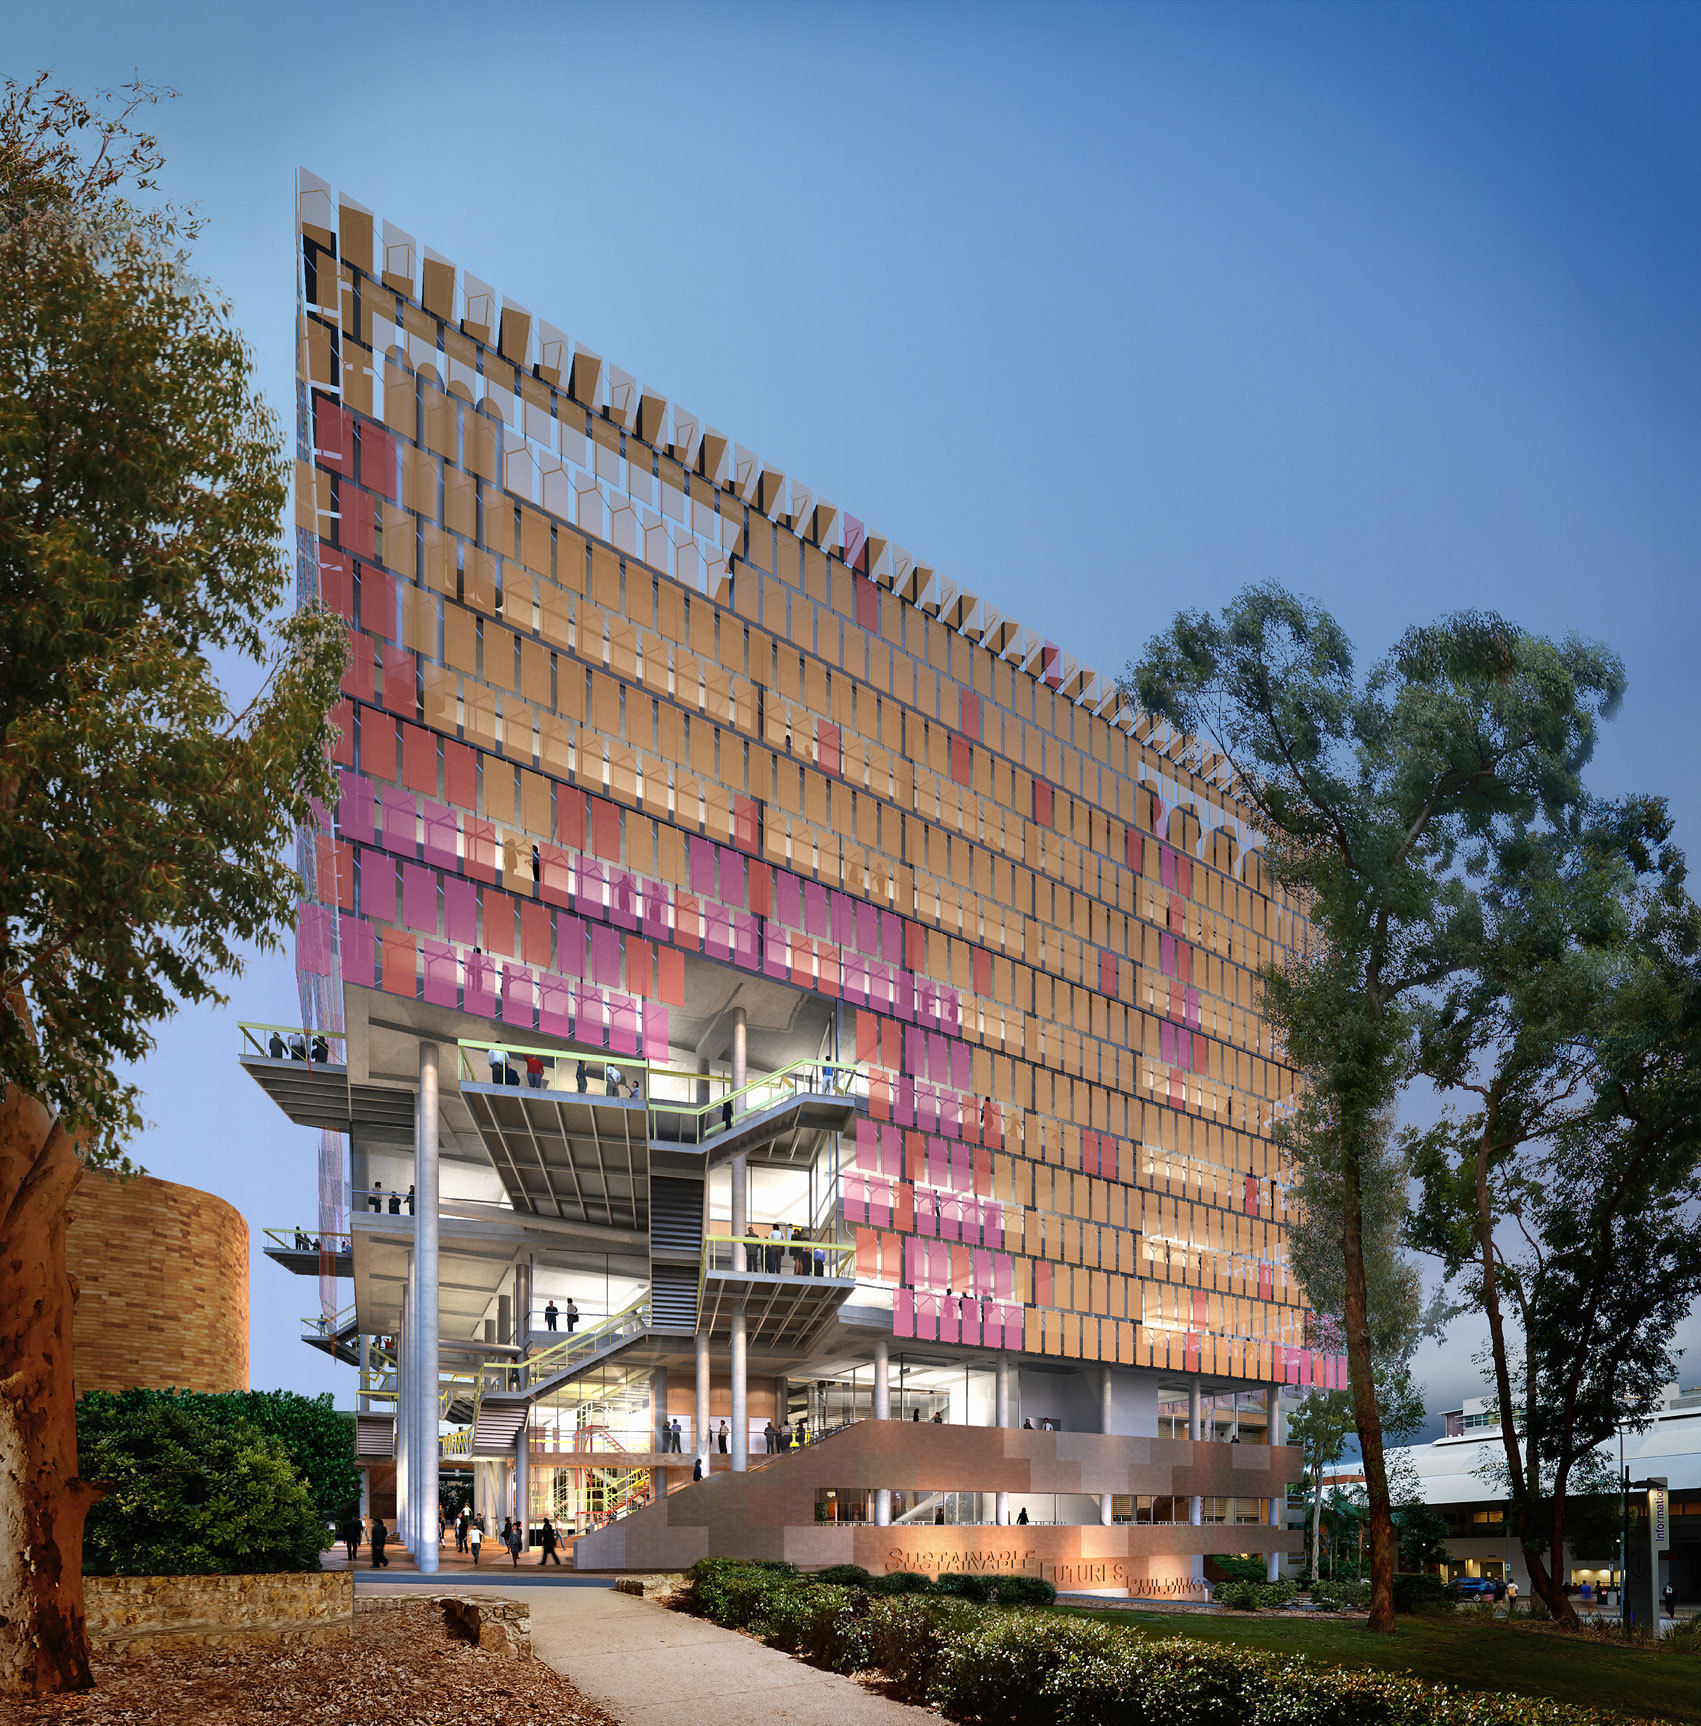 Lyons and m3architecture Selected to Design Sustainable Futures Building at the University of Queensland, Australia